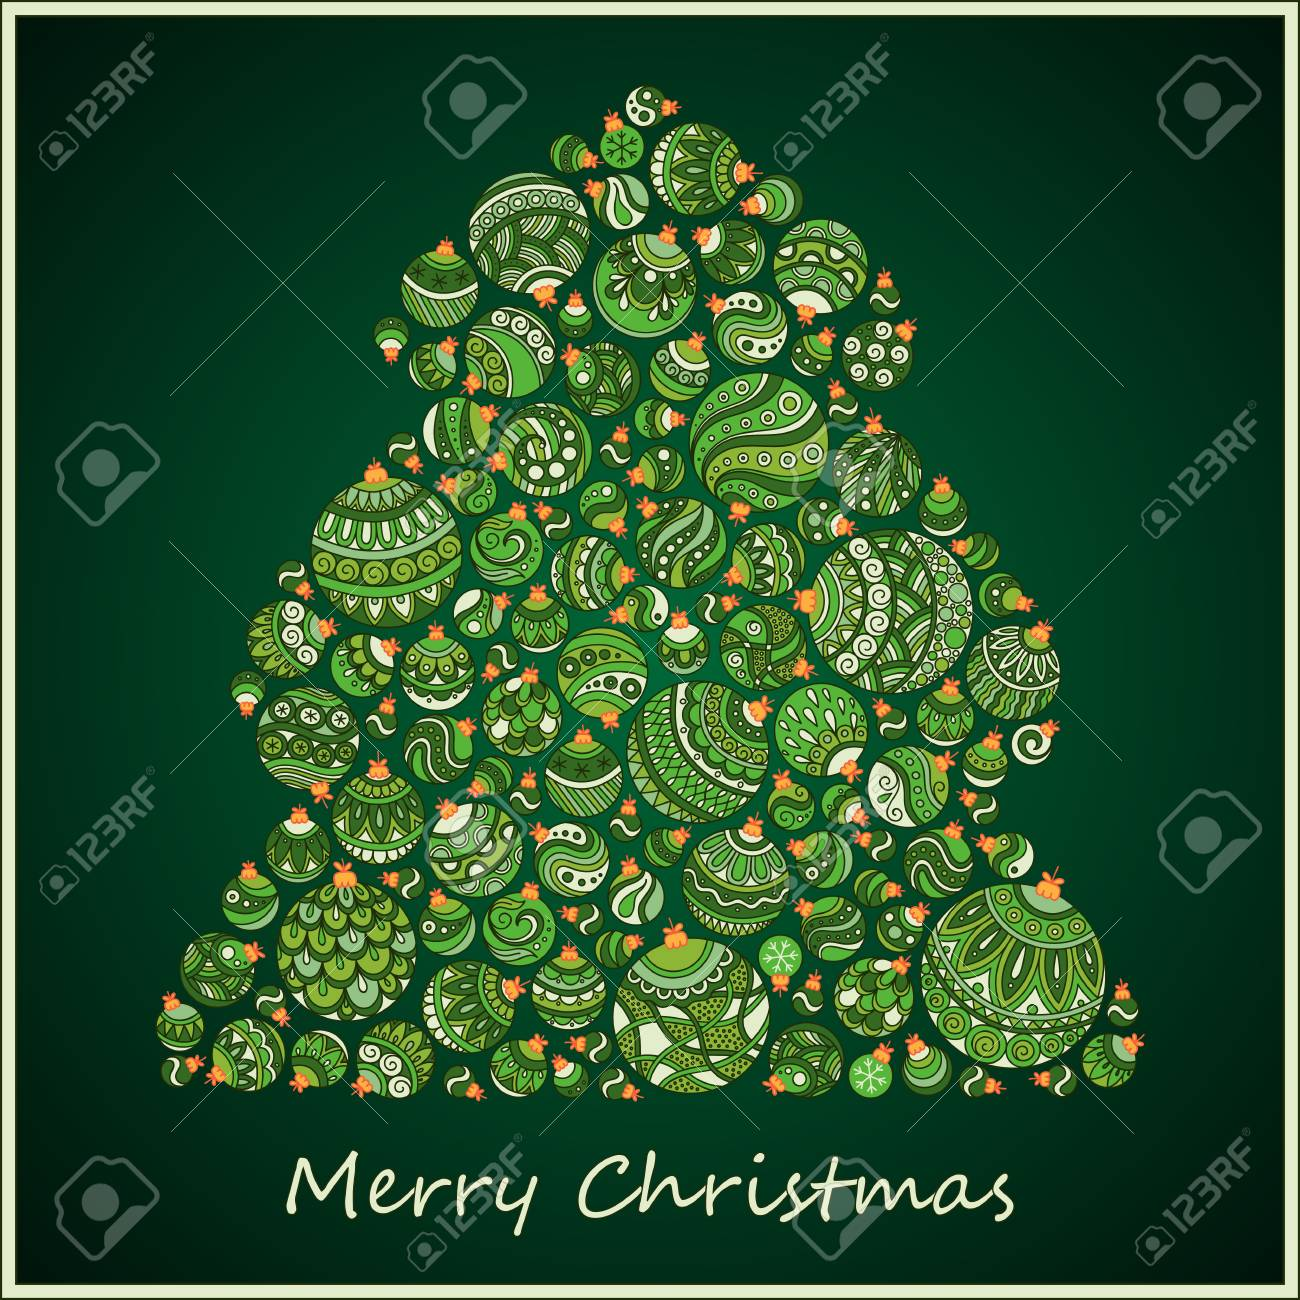 Stylized Design Green Christmas Tree Of Balls Card Stock Vector